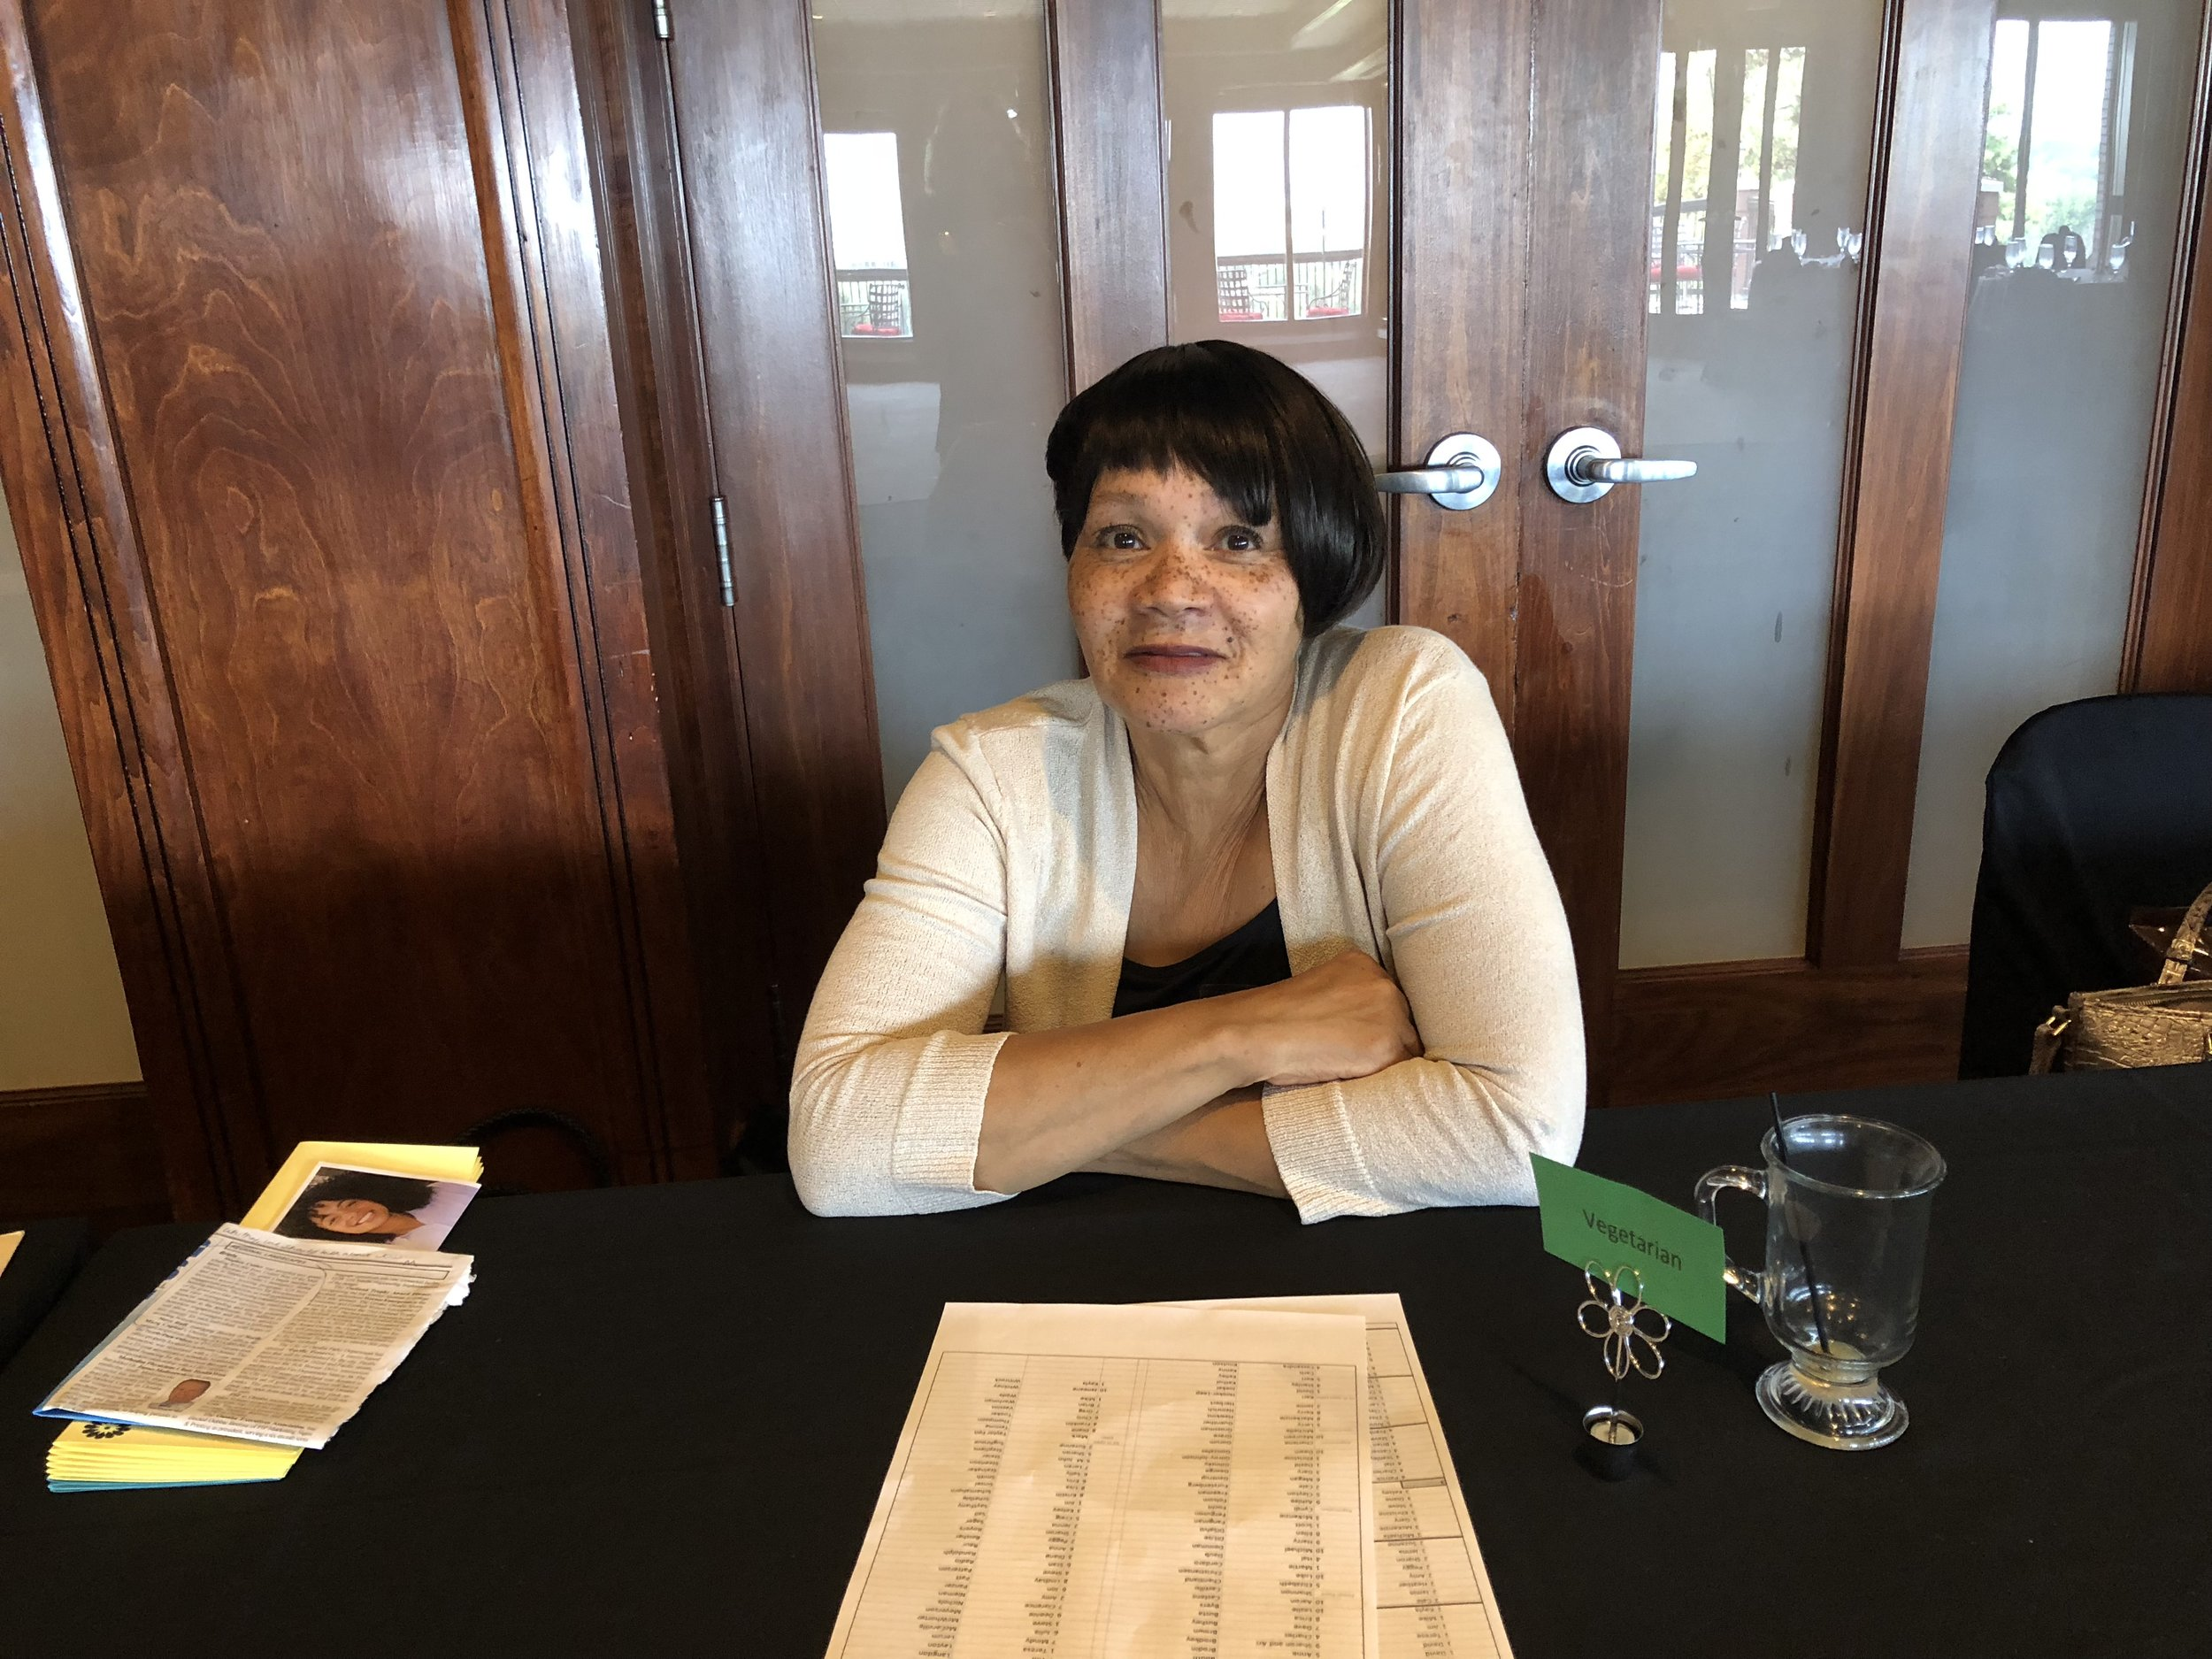 Charlene Gorum  Office Assistant    Charlene comes to us from the National Able Network. The organization helps clients achieve career success. Learn more  here .